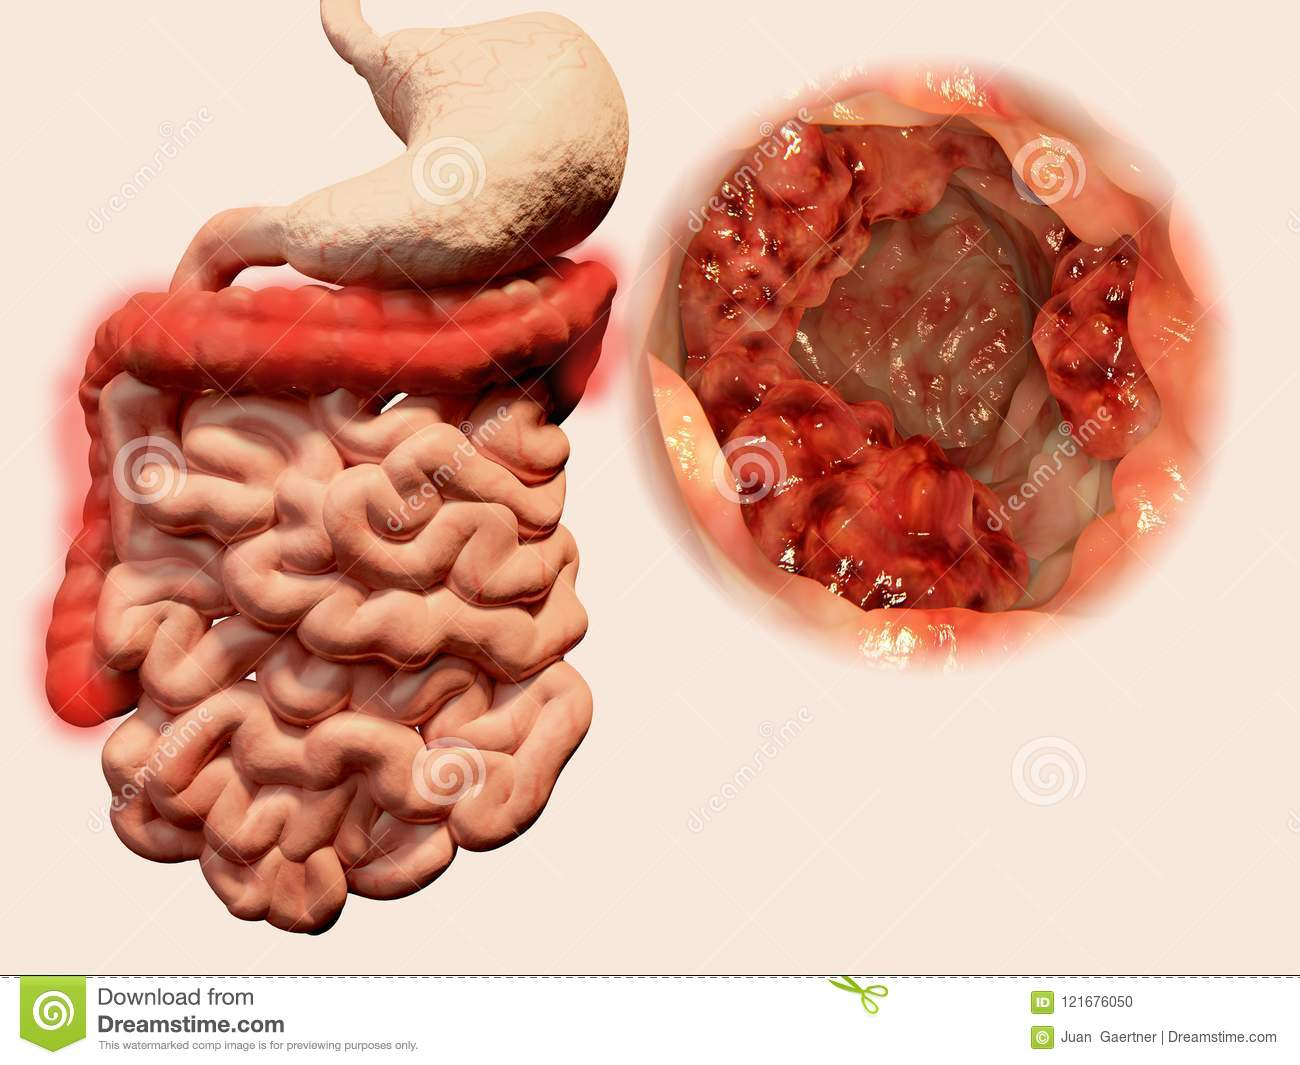 cancer malign colon hpv homme depistage